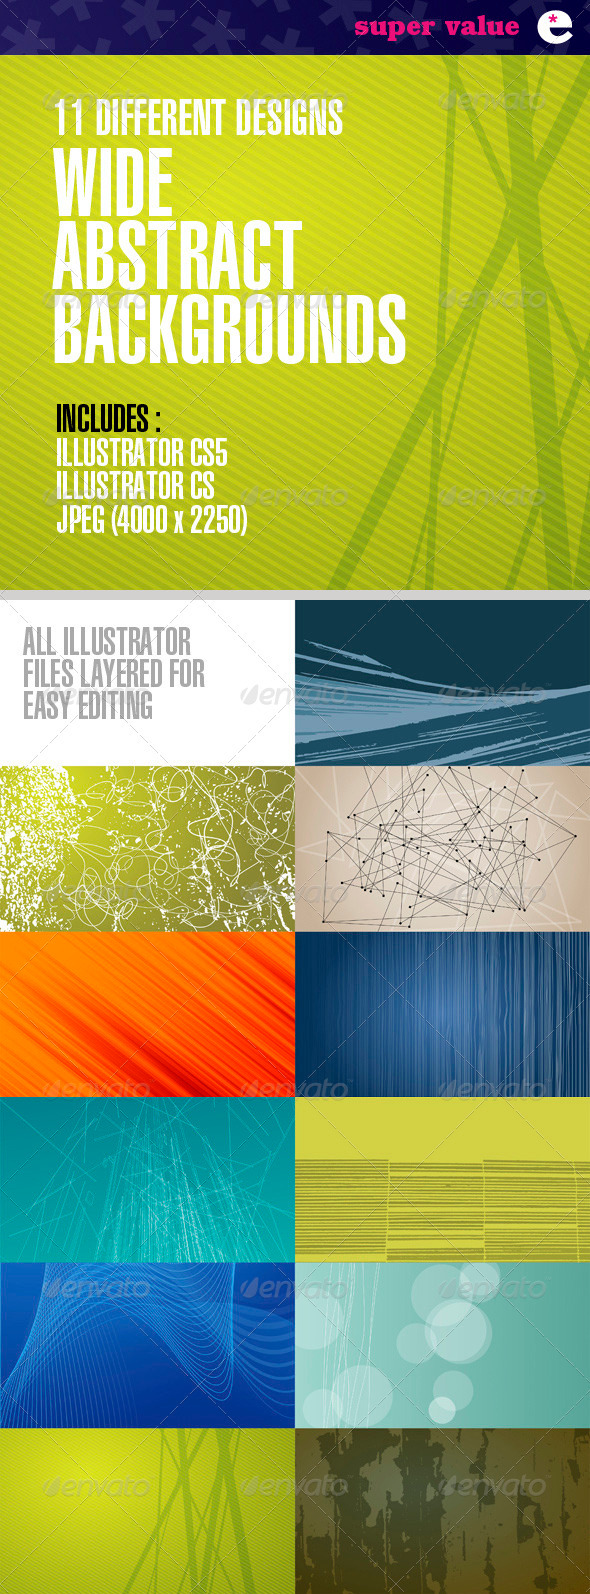 Wide Abstract Backgrounds – Pack of 11 Designs - Backgrounds Decorative